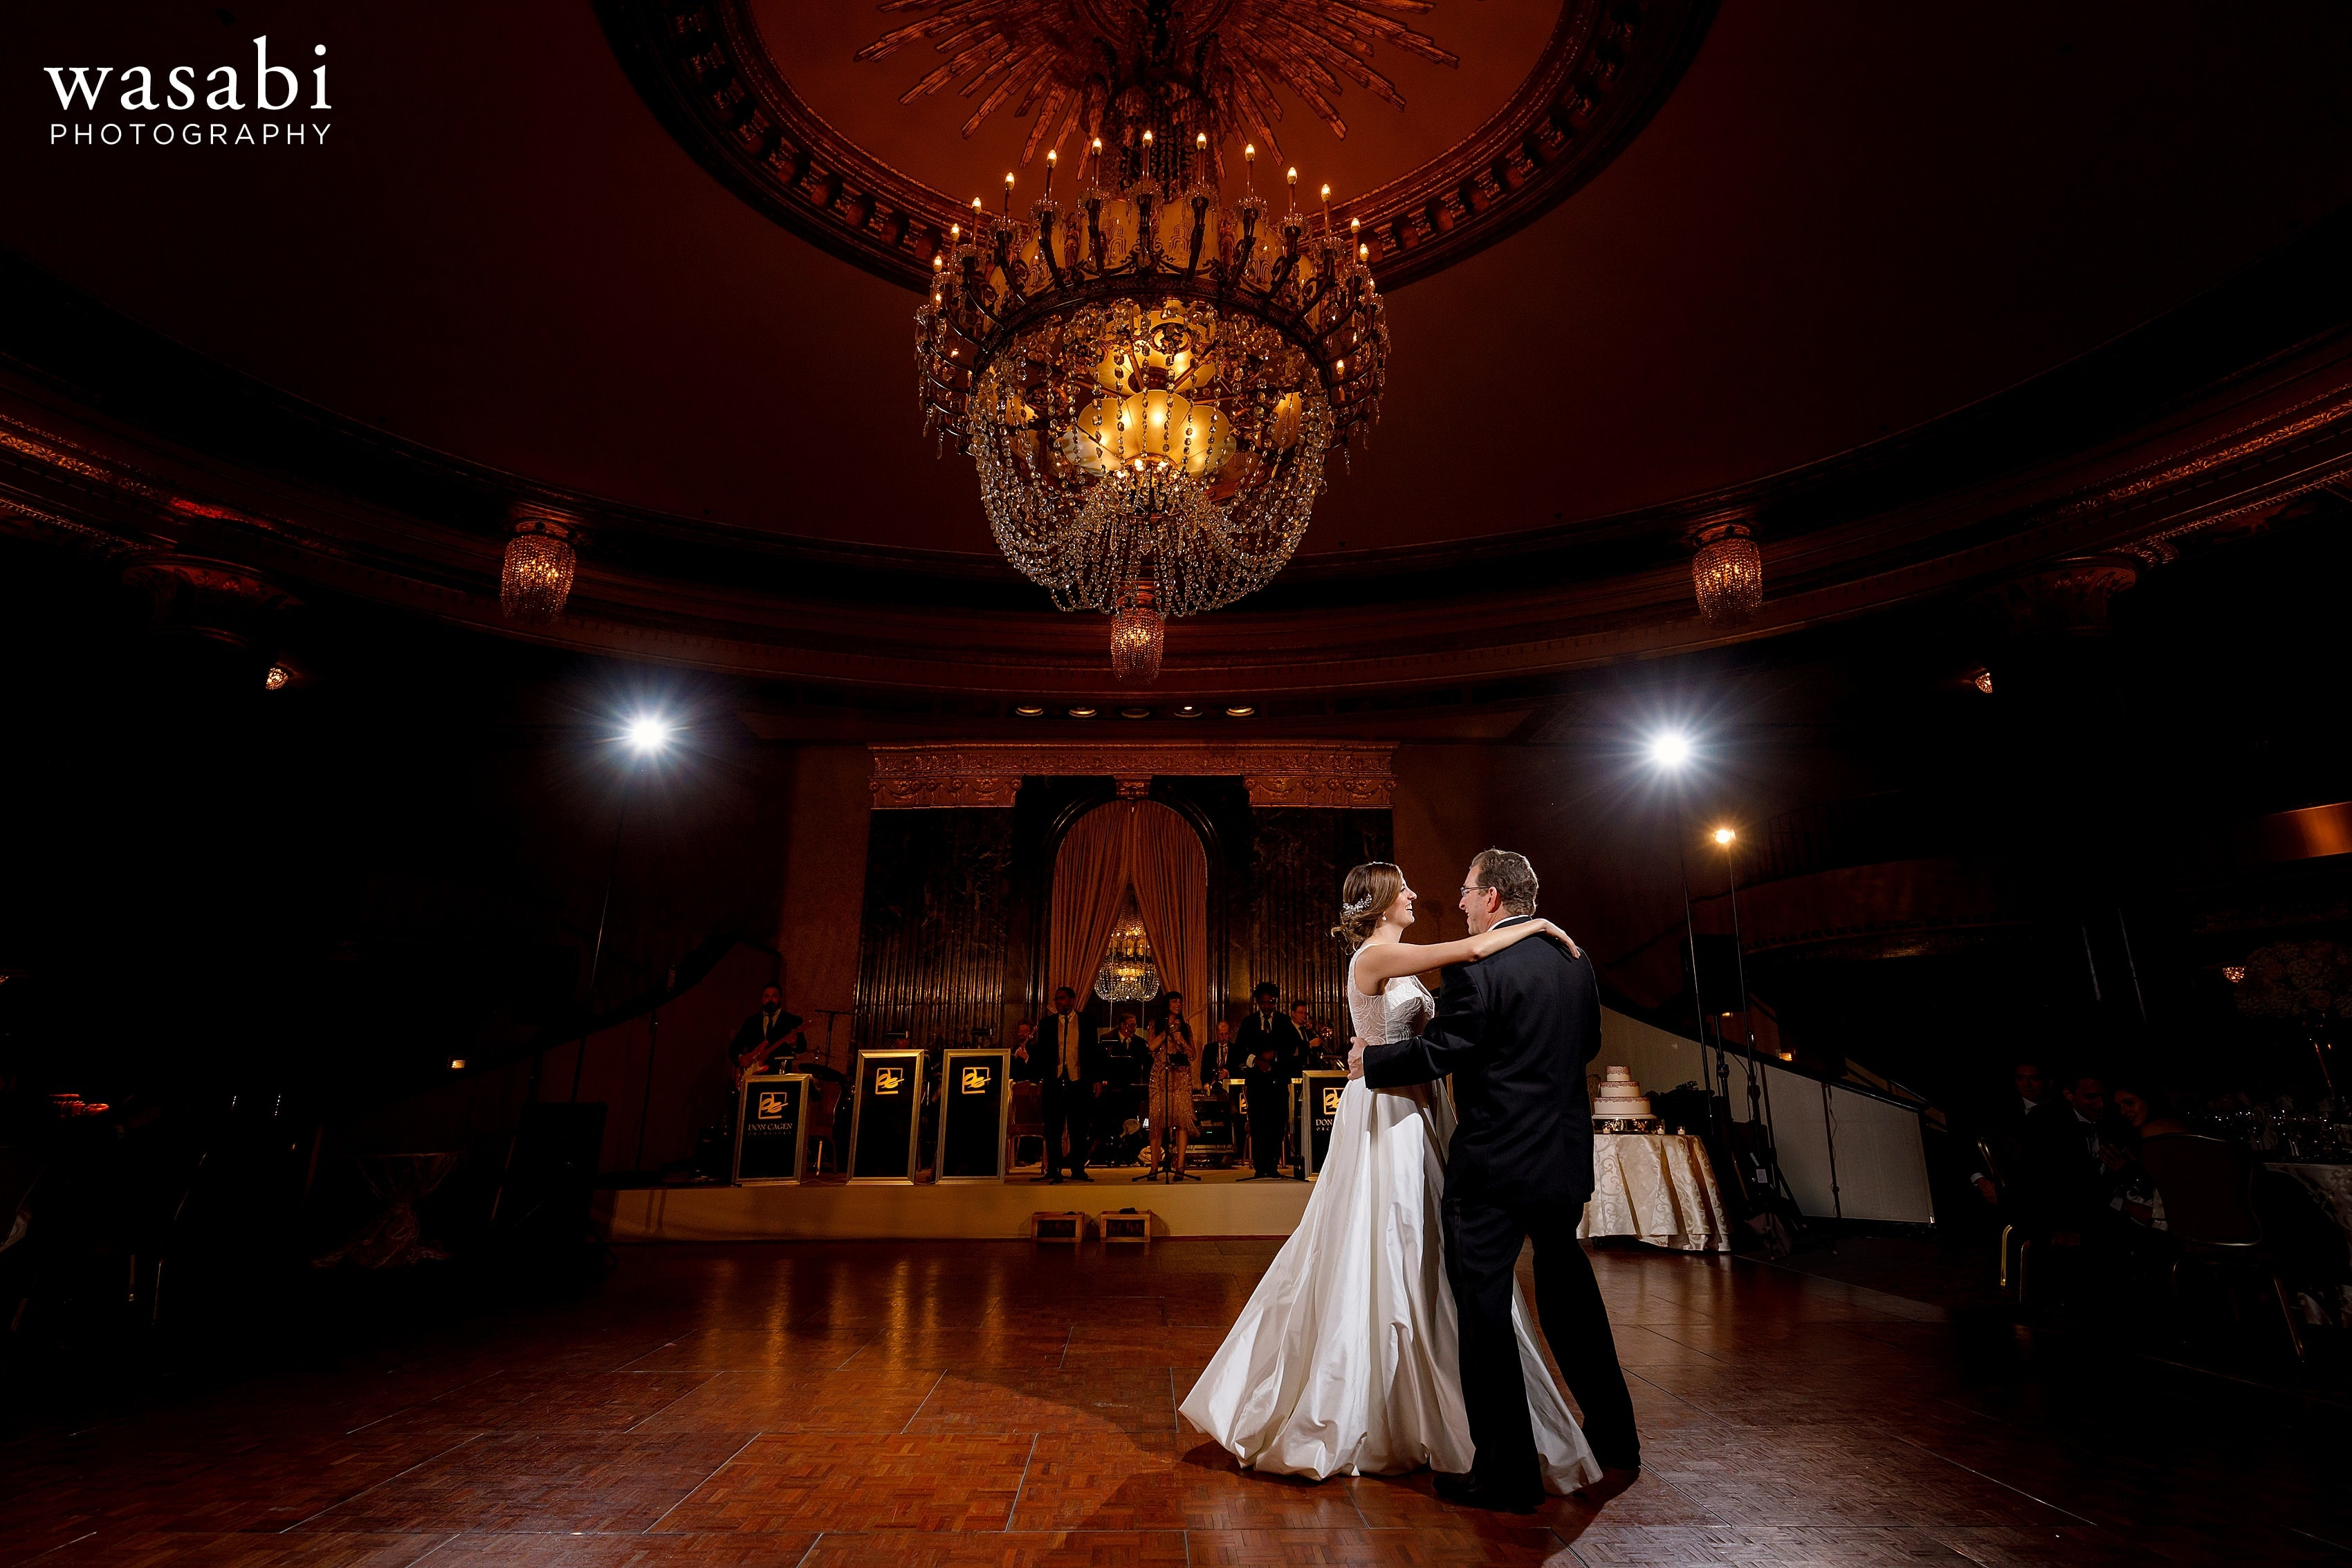 bride dances with her dad during father daughter dance at InterContinental Chicago Magnificent Mile Hotel wedding reception